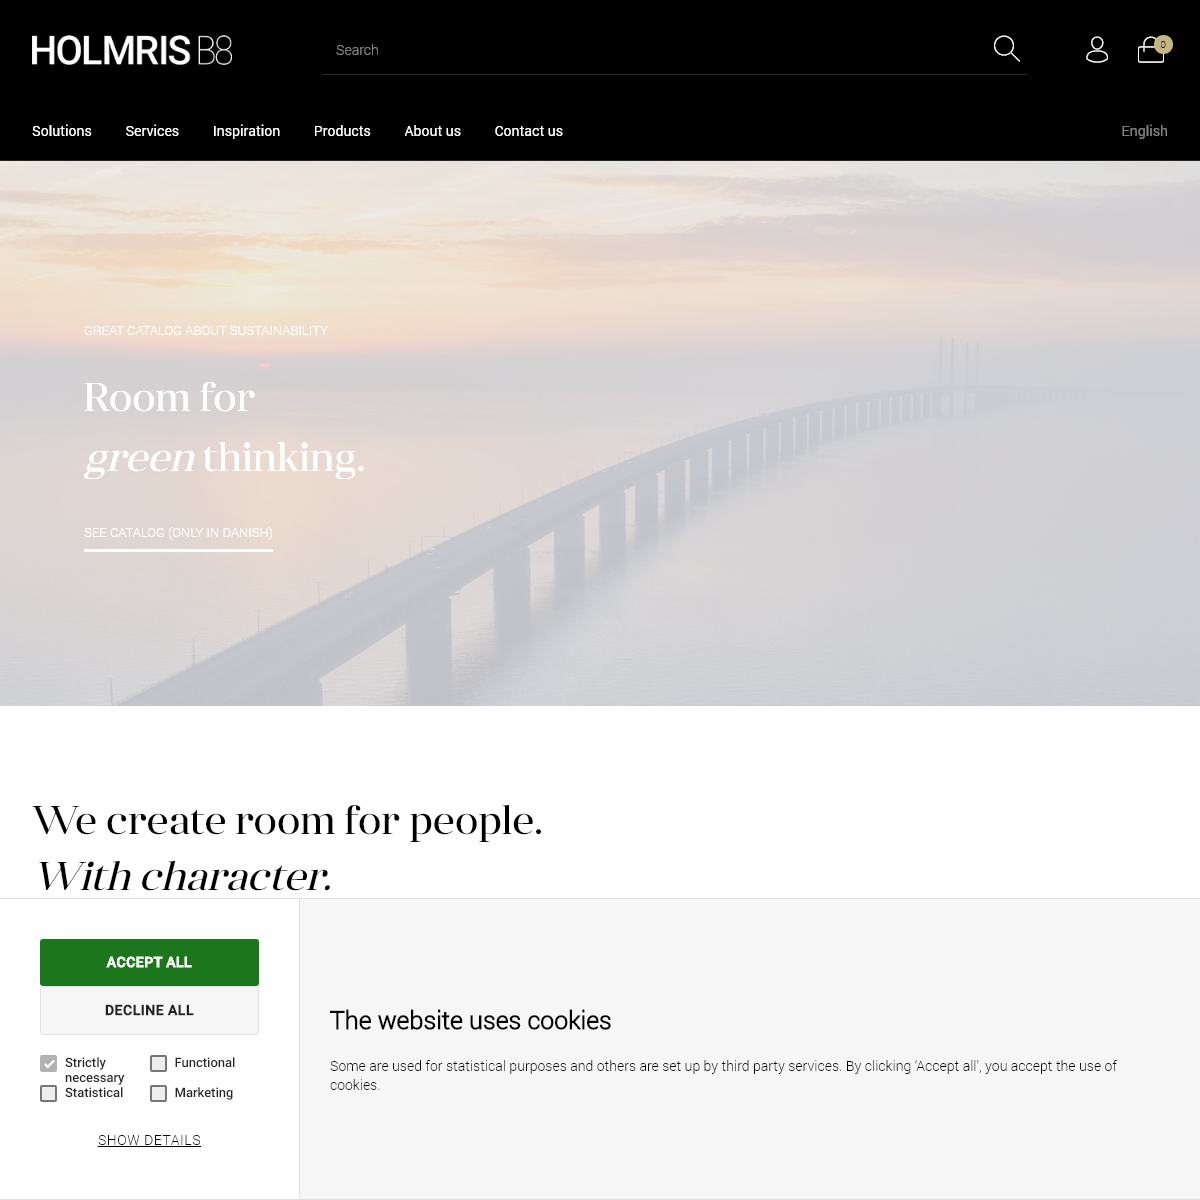 HOLMRIS B8 – We create room for people. With character.